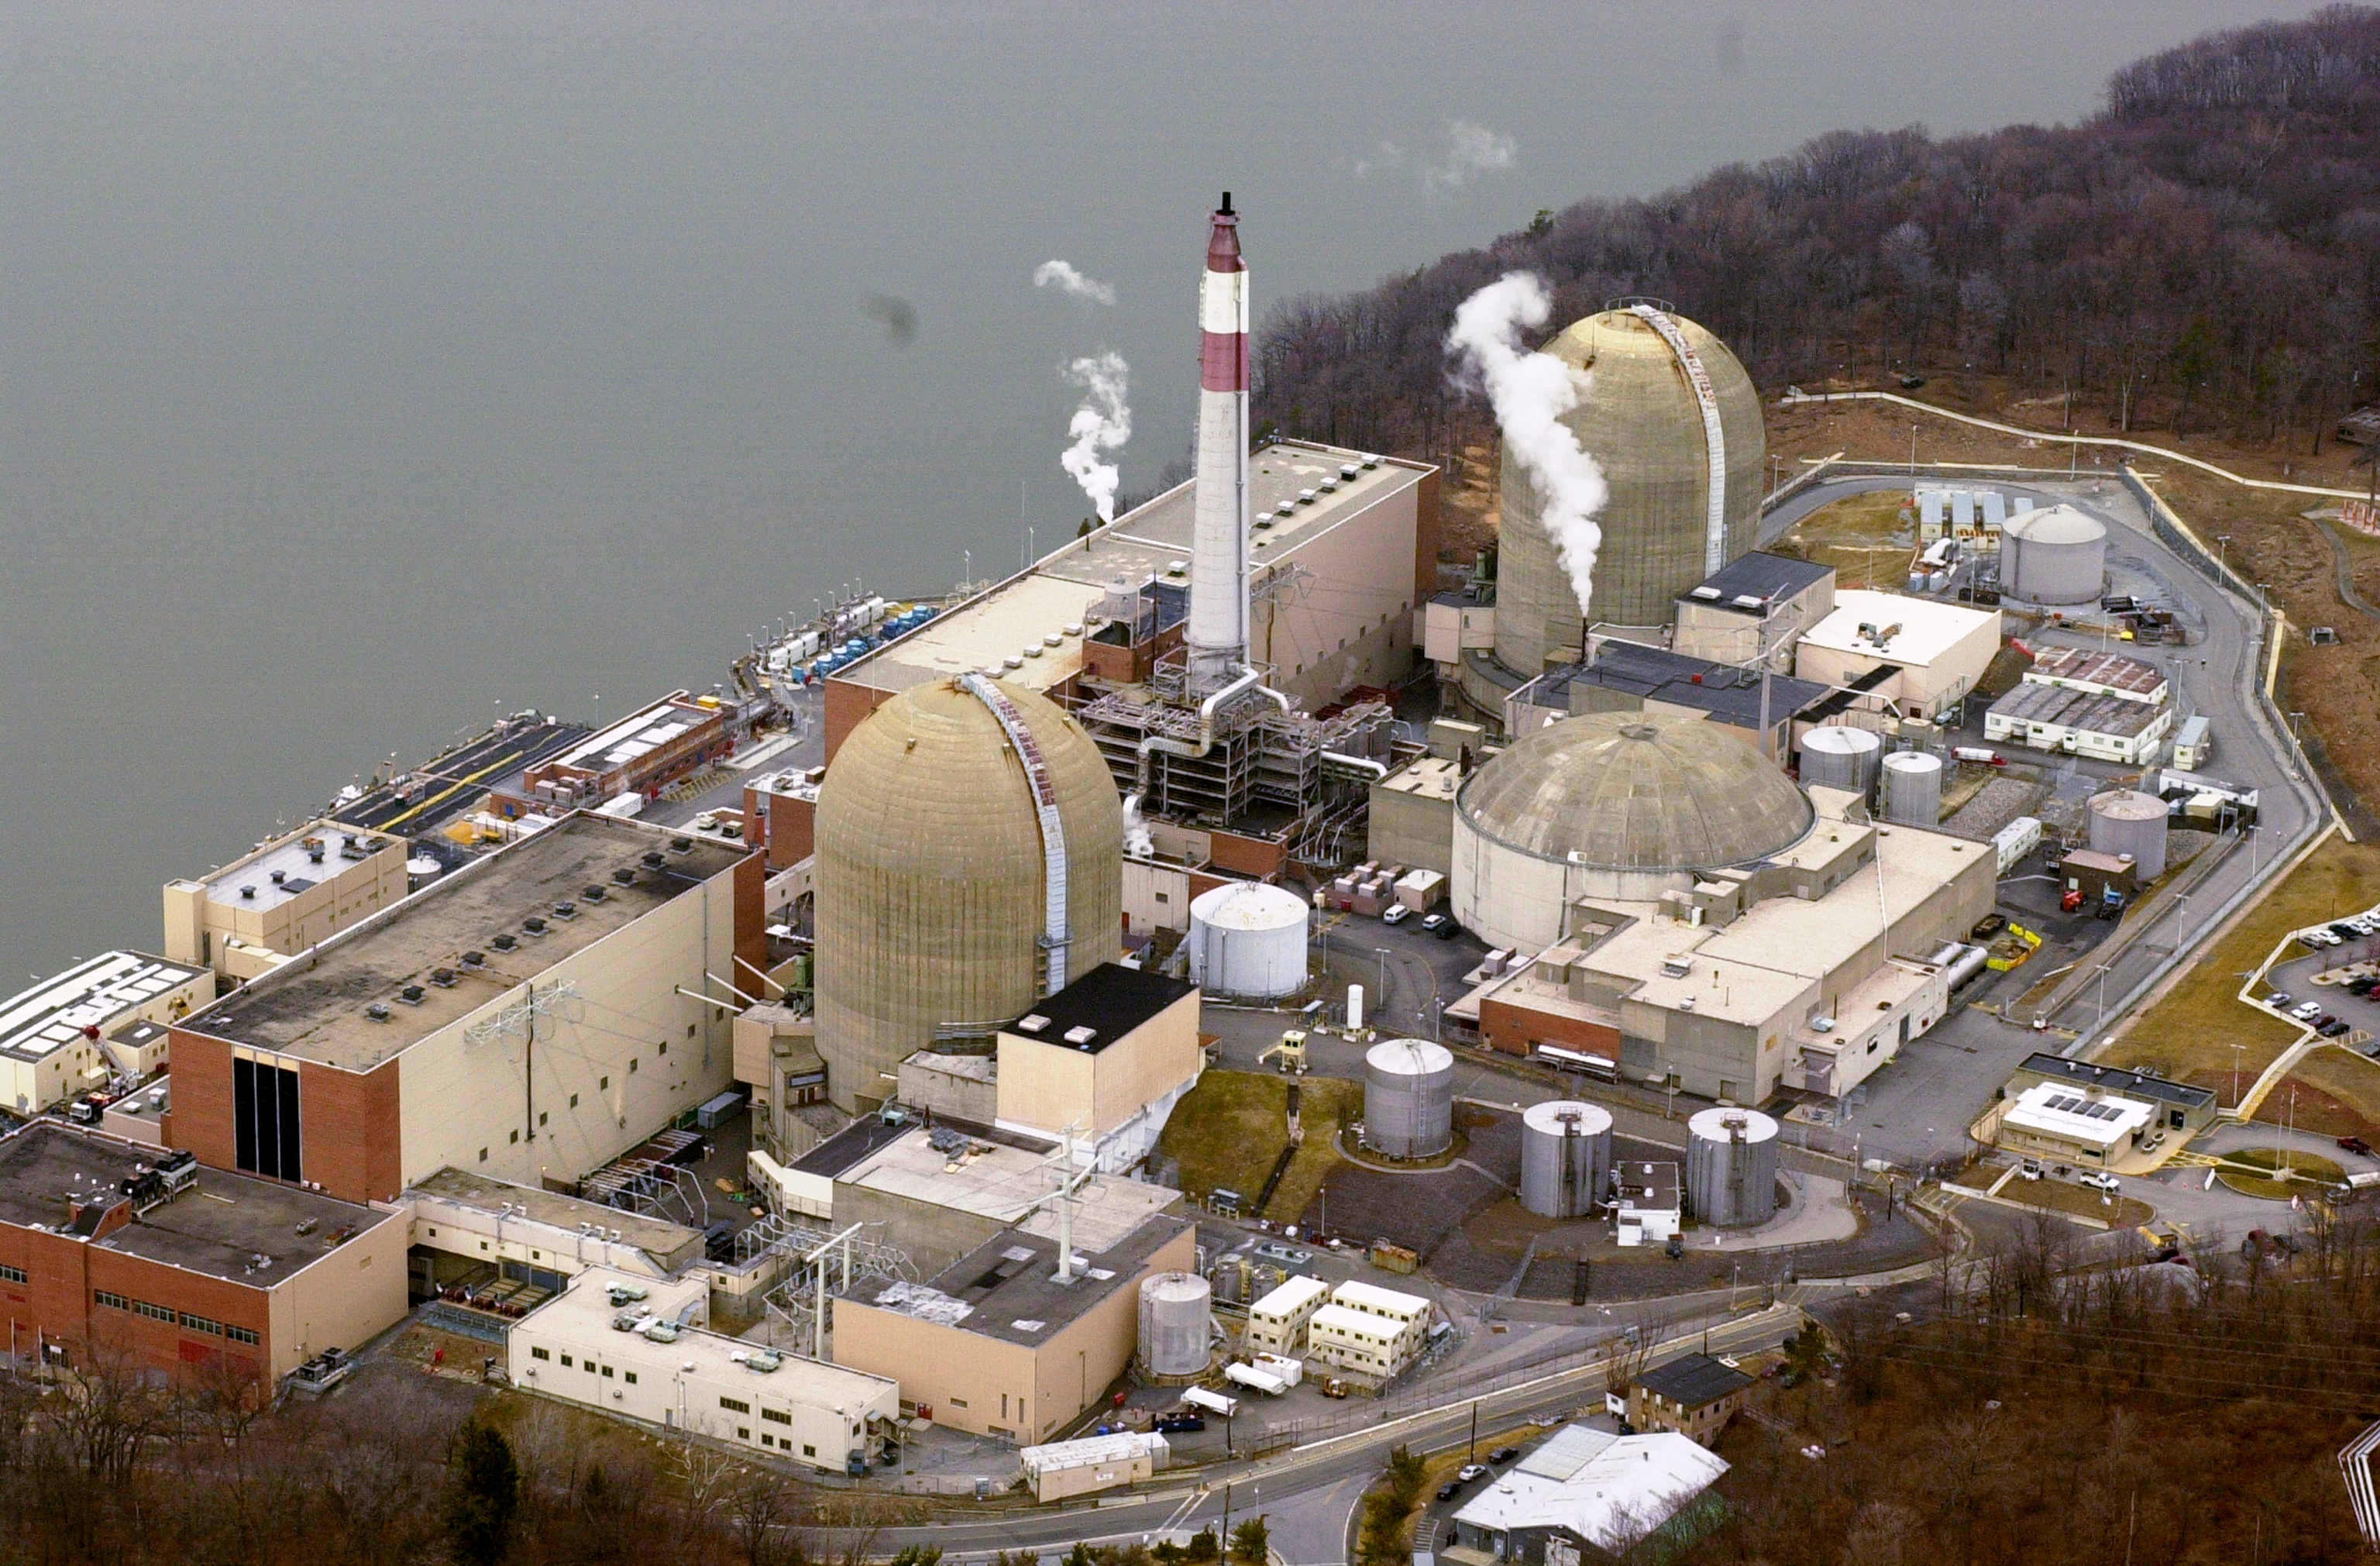 UNITED STATES - FEBRUARY 19: Aerial view of the Indian Point nuclear power plant along the banks of the Hudson River in Westchester County.